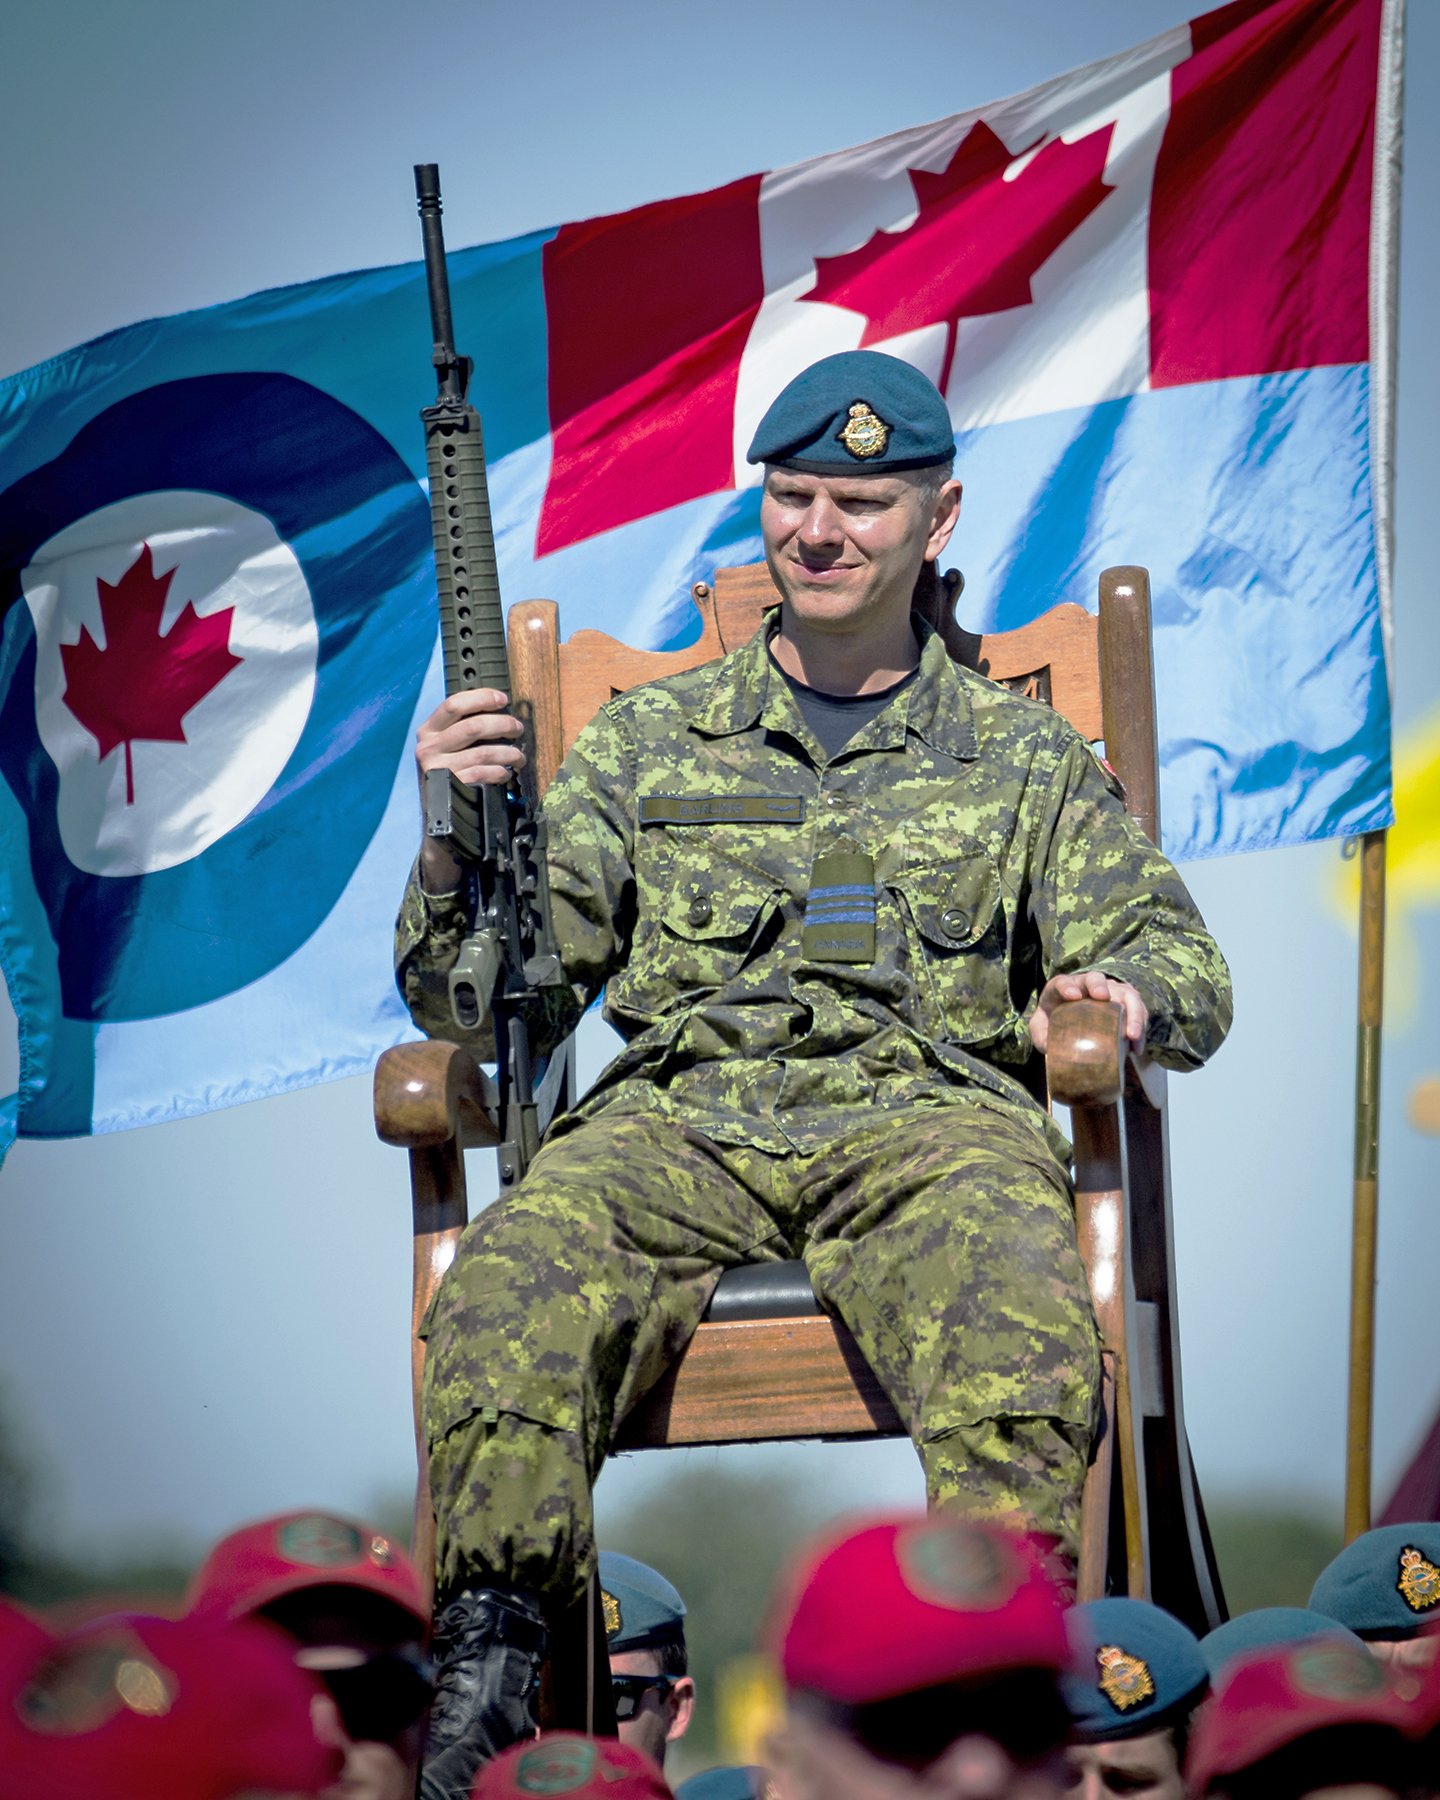 Royal sedan chair - Chair On The Shoulders Of Other People An Rcaf Flag Waves Behind Him